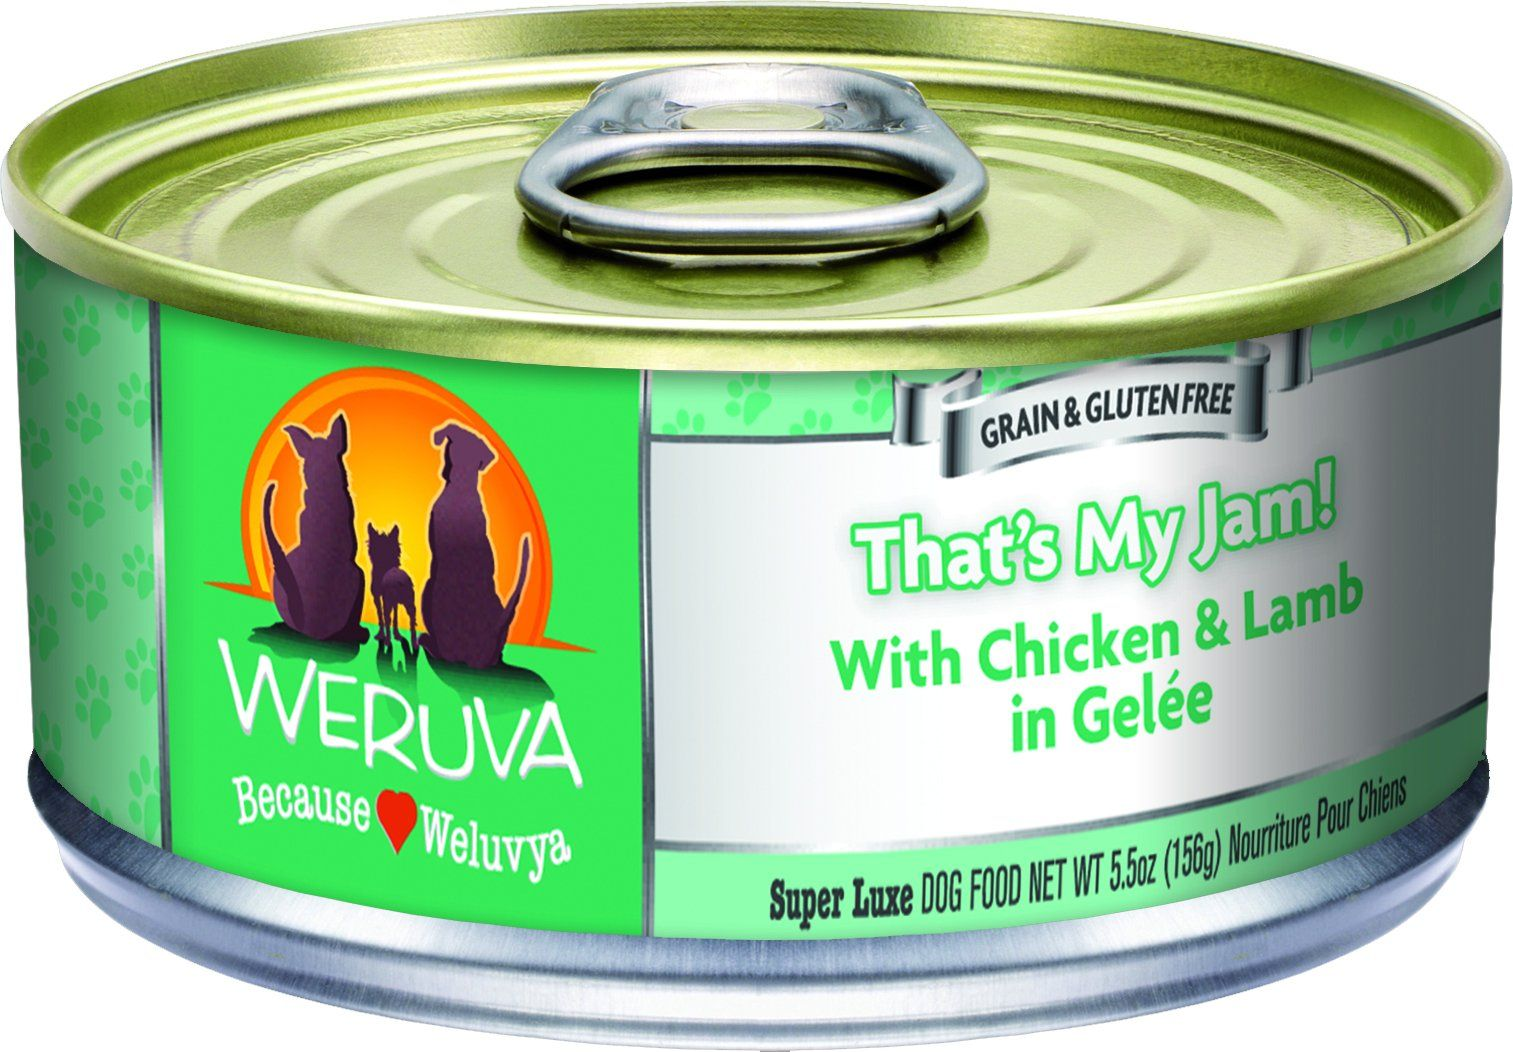 Weruva 878408004490 Thats My Jam Dog Food 24 Pack 5.5 oz